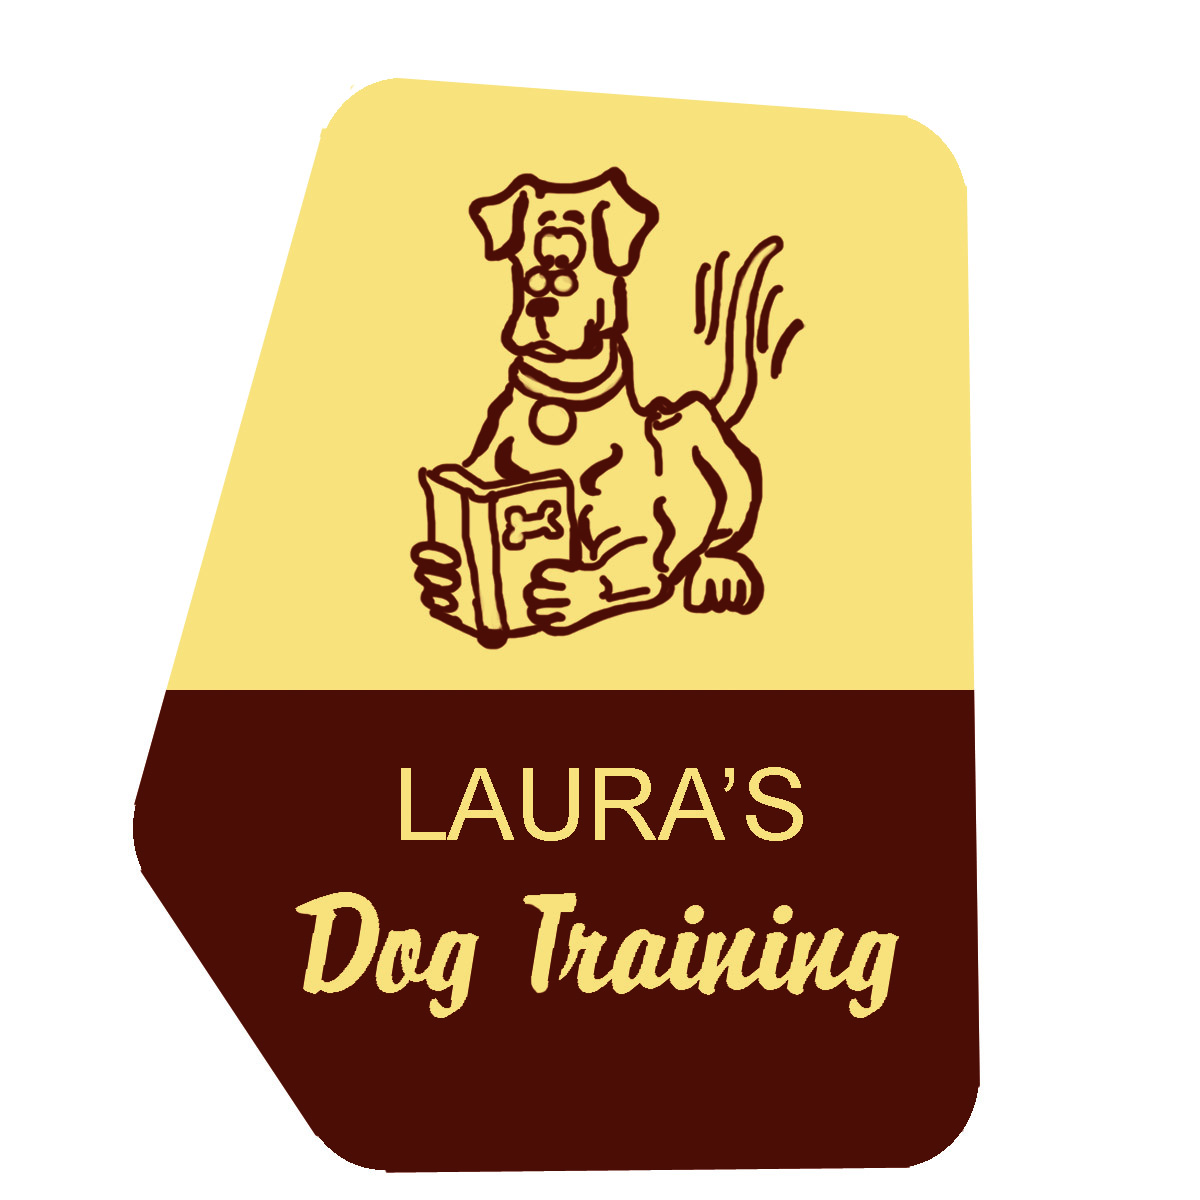 Laura's Dog Training